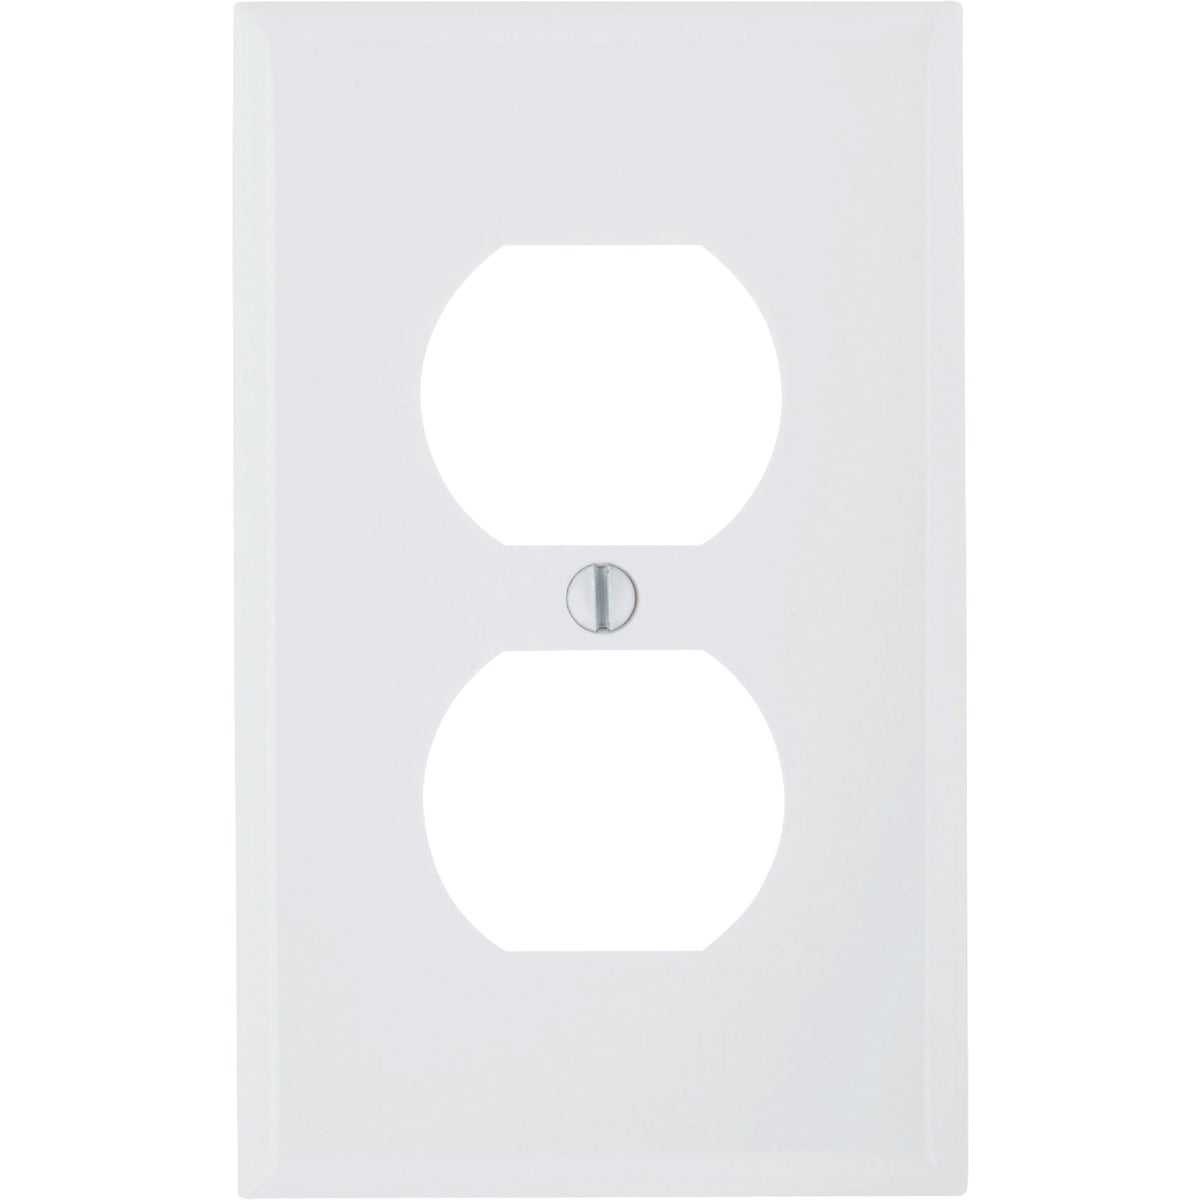 WHT DUP OUTLET WALLPLATE - 80703W by Leviton Mfg Co